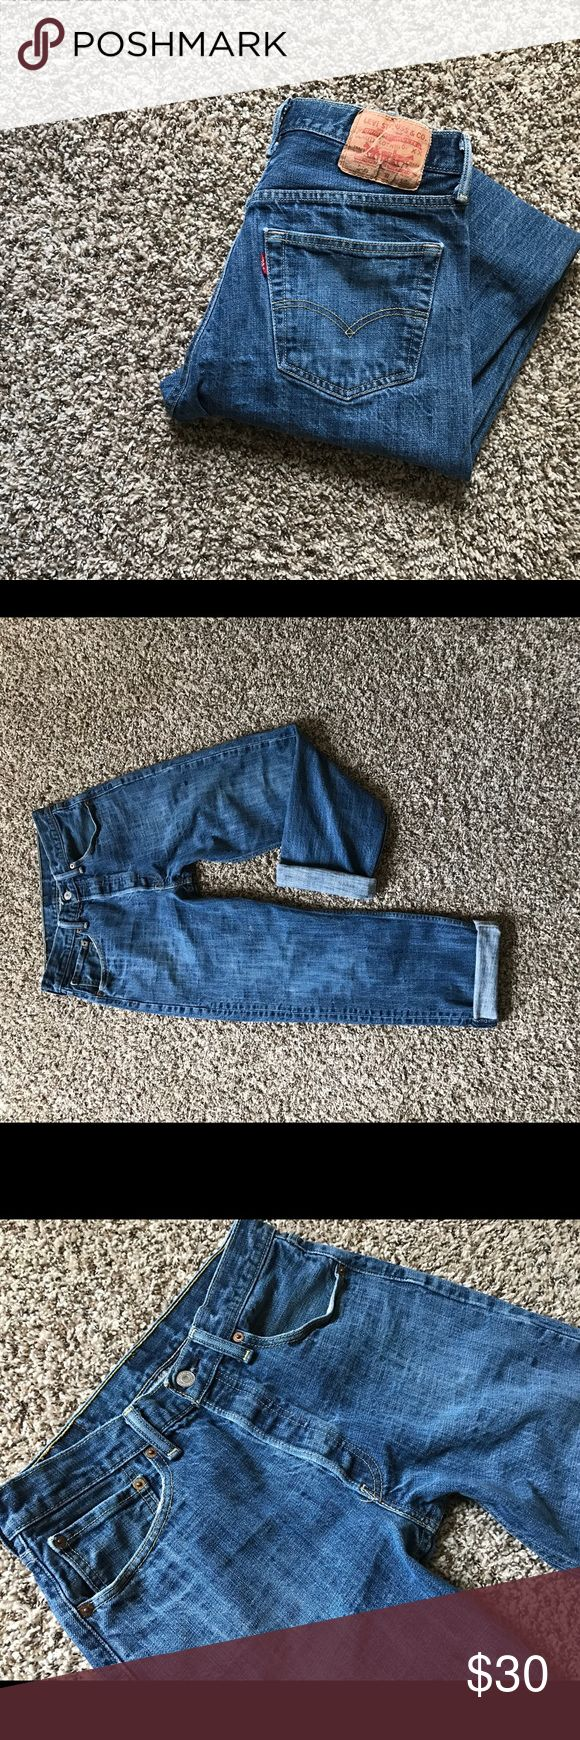 """Vintage Levi's 501 High Waisted Women's Jeans Vintage Levi's 501 High Waisted Jeans - button fly - great condition - I wore them rolled up and are meant to be a tough baggy/boyfriend - tag says 32x32 but, the inseam measured (unrolled) is 27"""" - other measurements are pictured - which makes them perfect for crop style - one paint spot (pictured) gives them character! Levi's Jeans"""